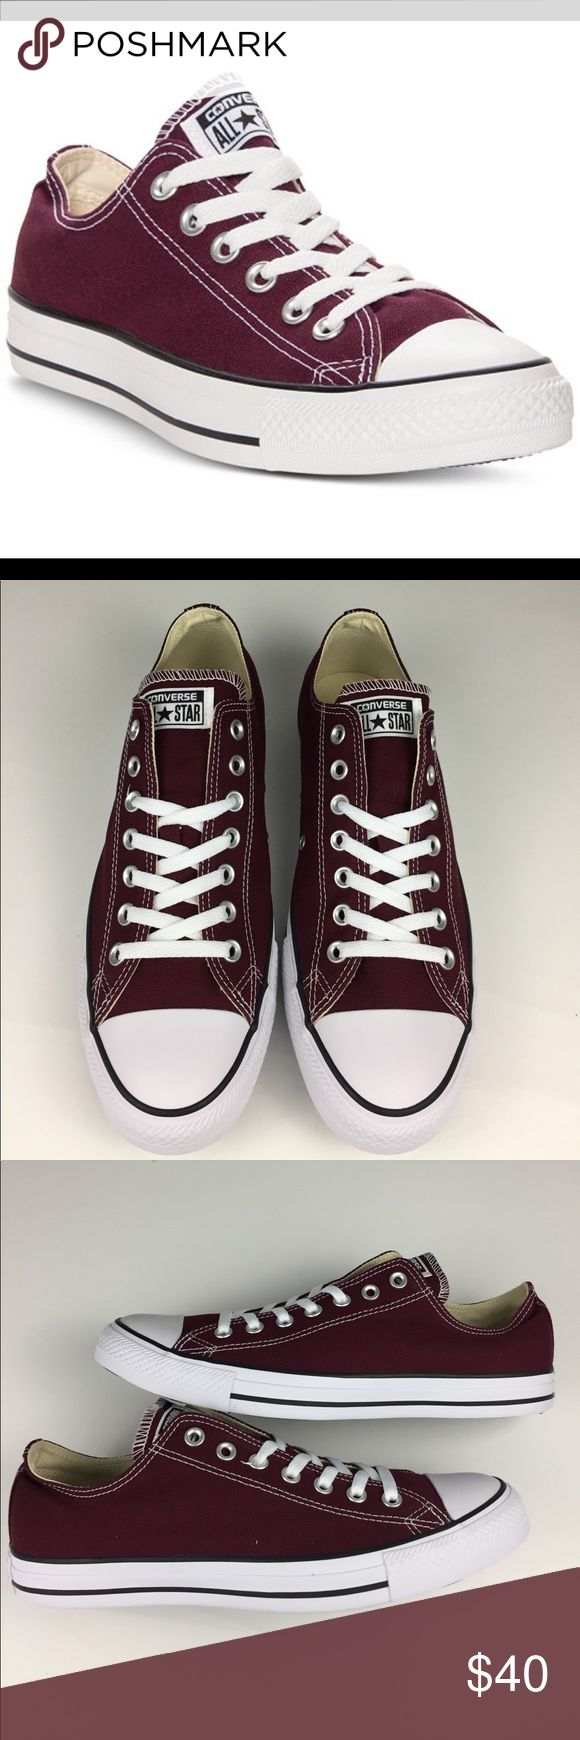 Converse Ox Sneakers. M=10, W=12 Burgundy converse Chuck Taylor Ox Casual sneakers. An All-American shoe. Unisex. Men's 10. Women's 12.  New in box. No tags attached. Converse Shoes Sneakers